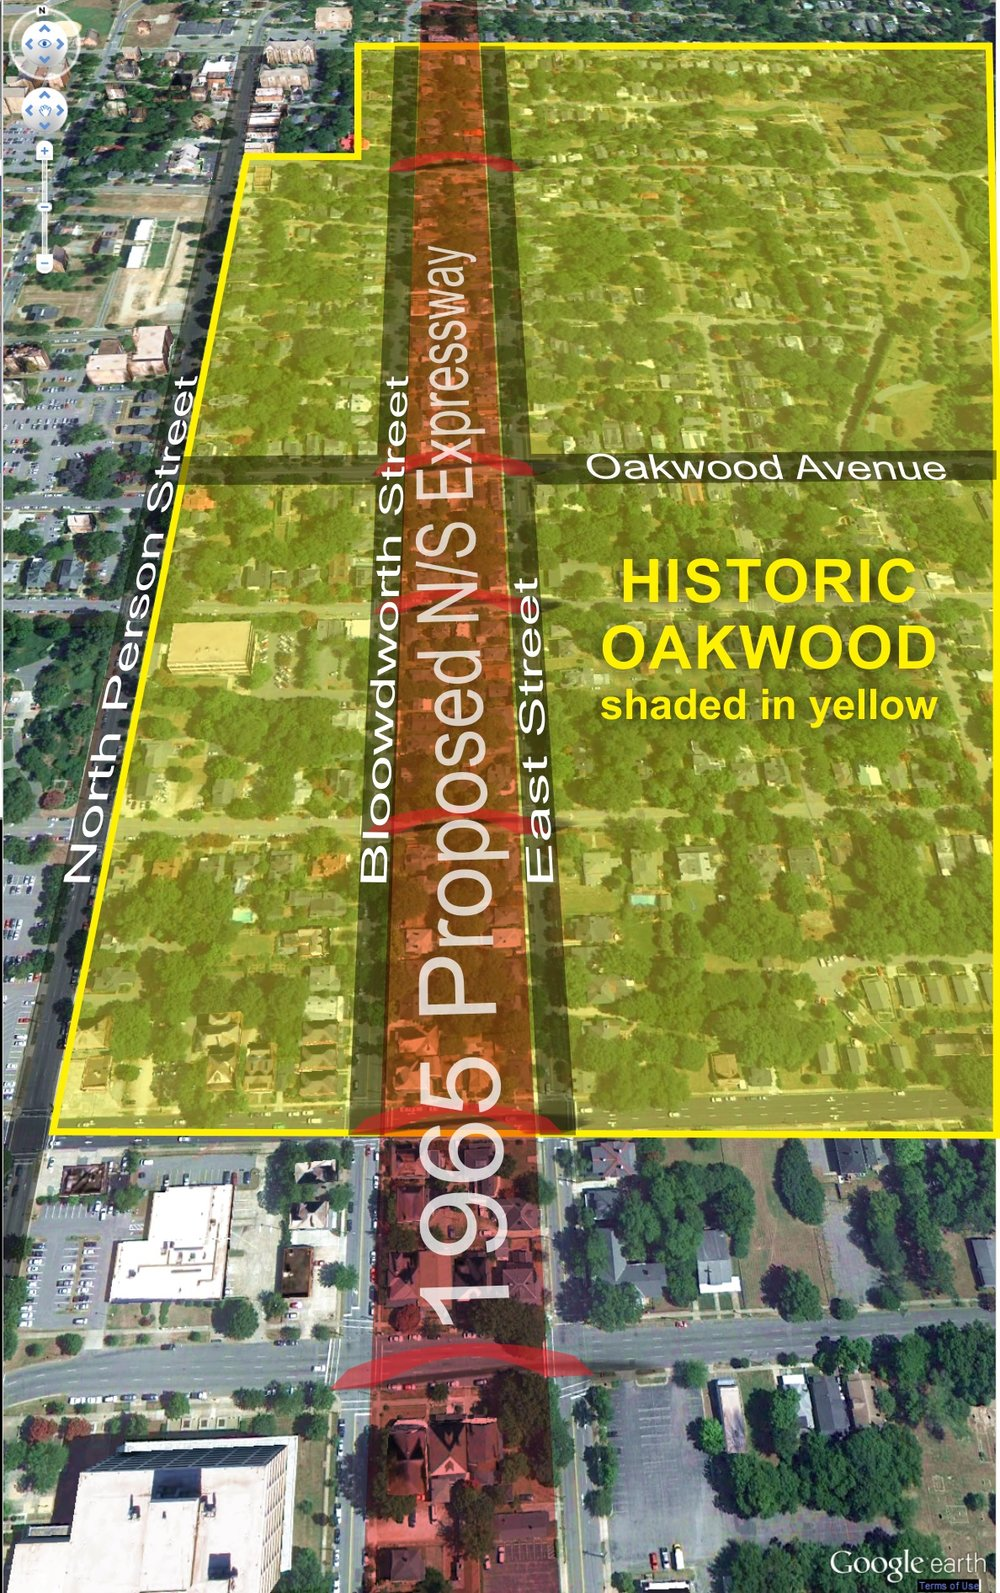 Proposed North-South Expressway that would have cut through the heart of the now Oakwood Historic District.